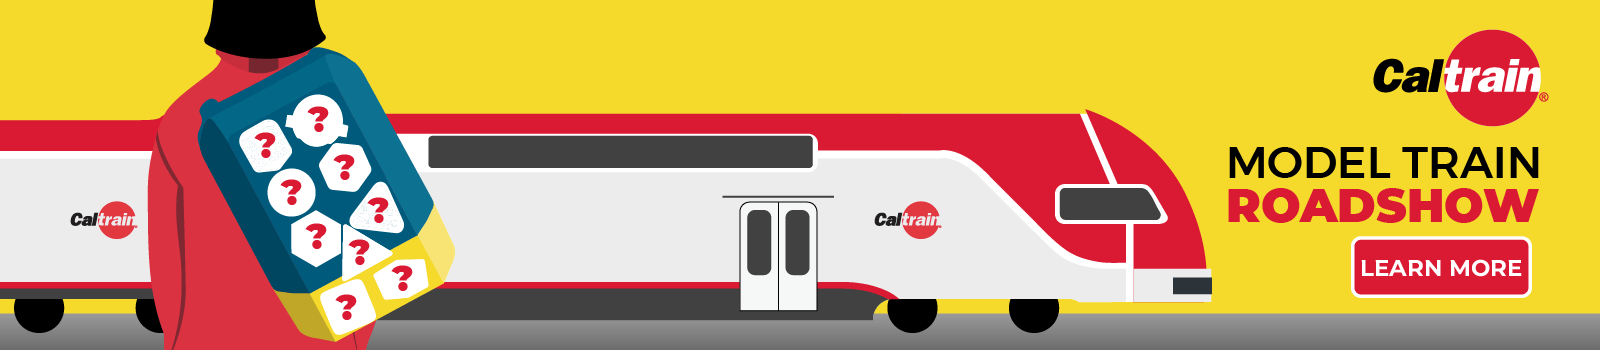 CalMod Model Roadshow, Construction, Electric Trains, Caltrain Electrification, Caltrain enhancement, Caltrain new trains